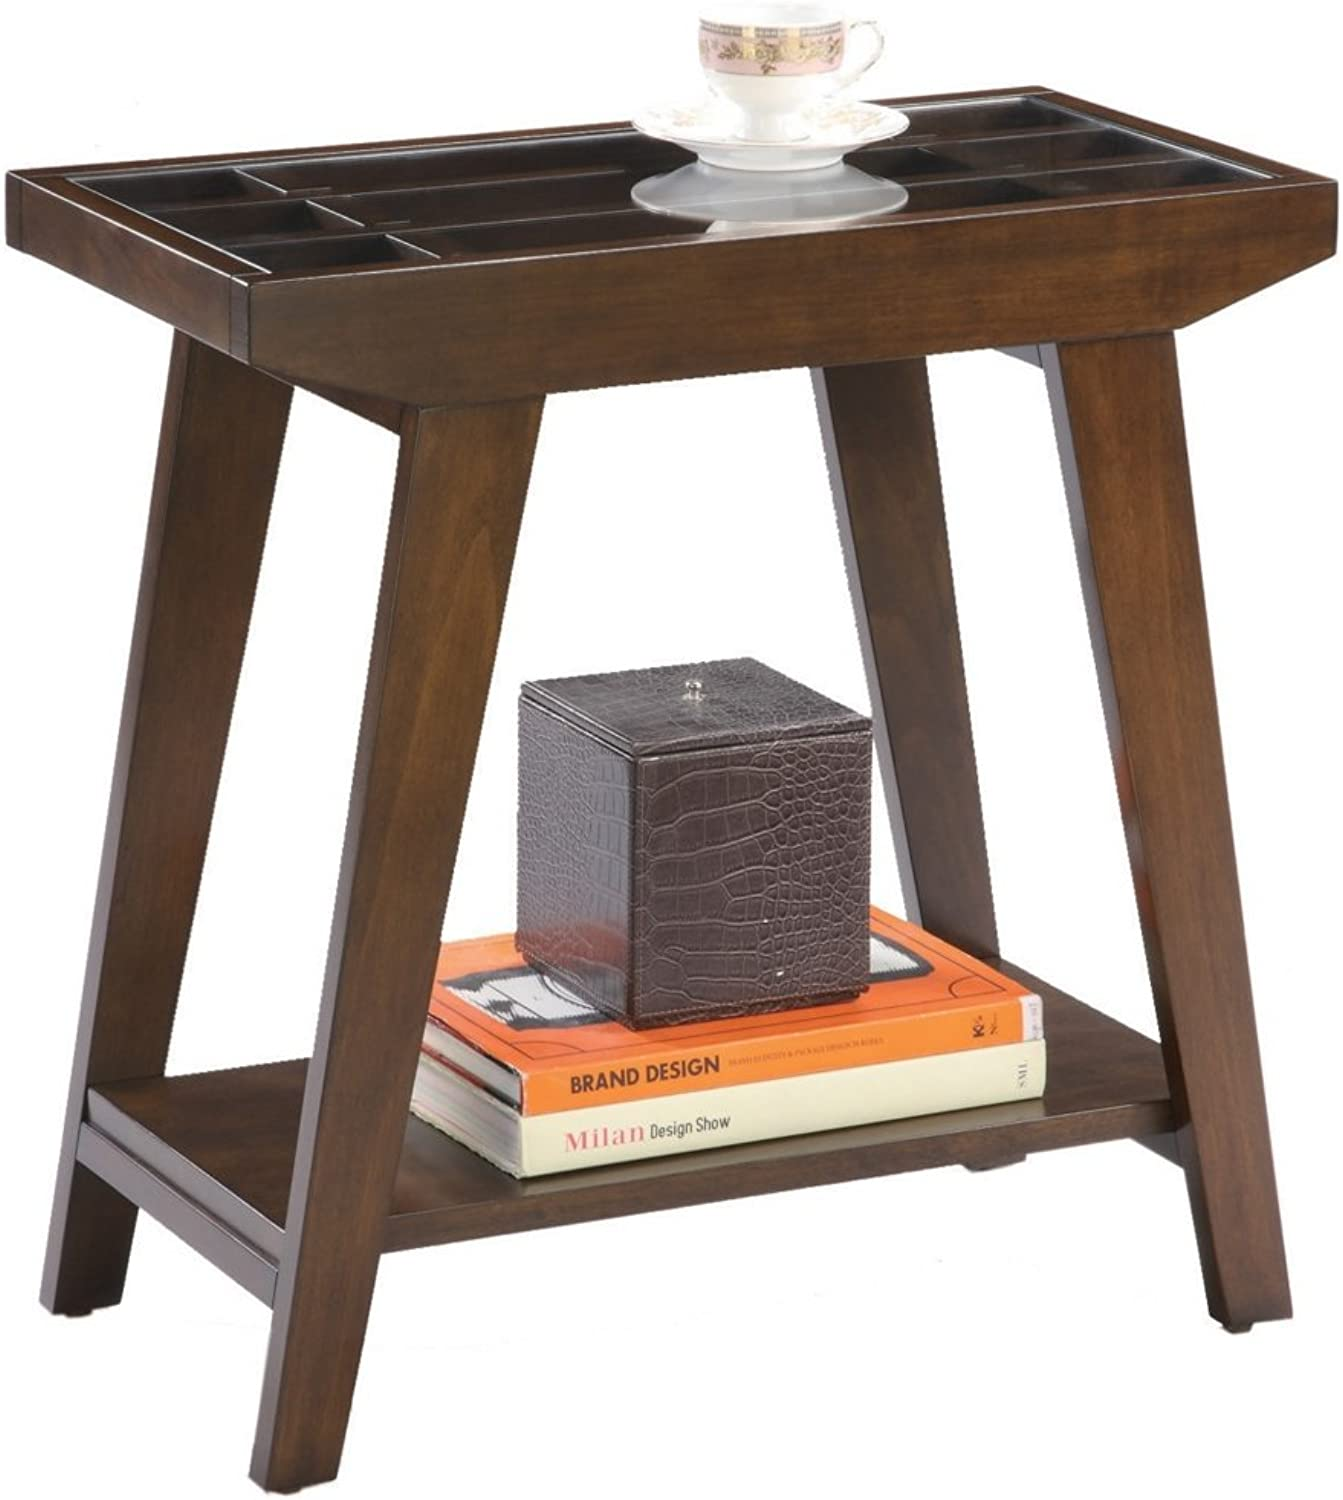 ORE International 7228 Traditional Glass Side End Table, 24-Inch, Espresso